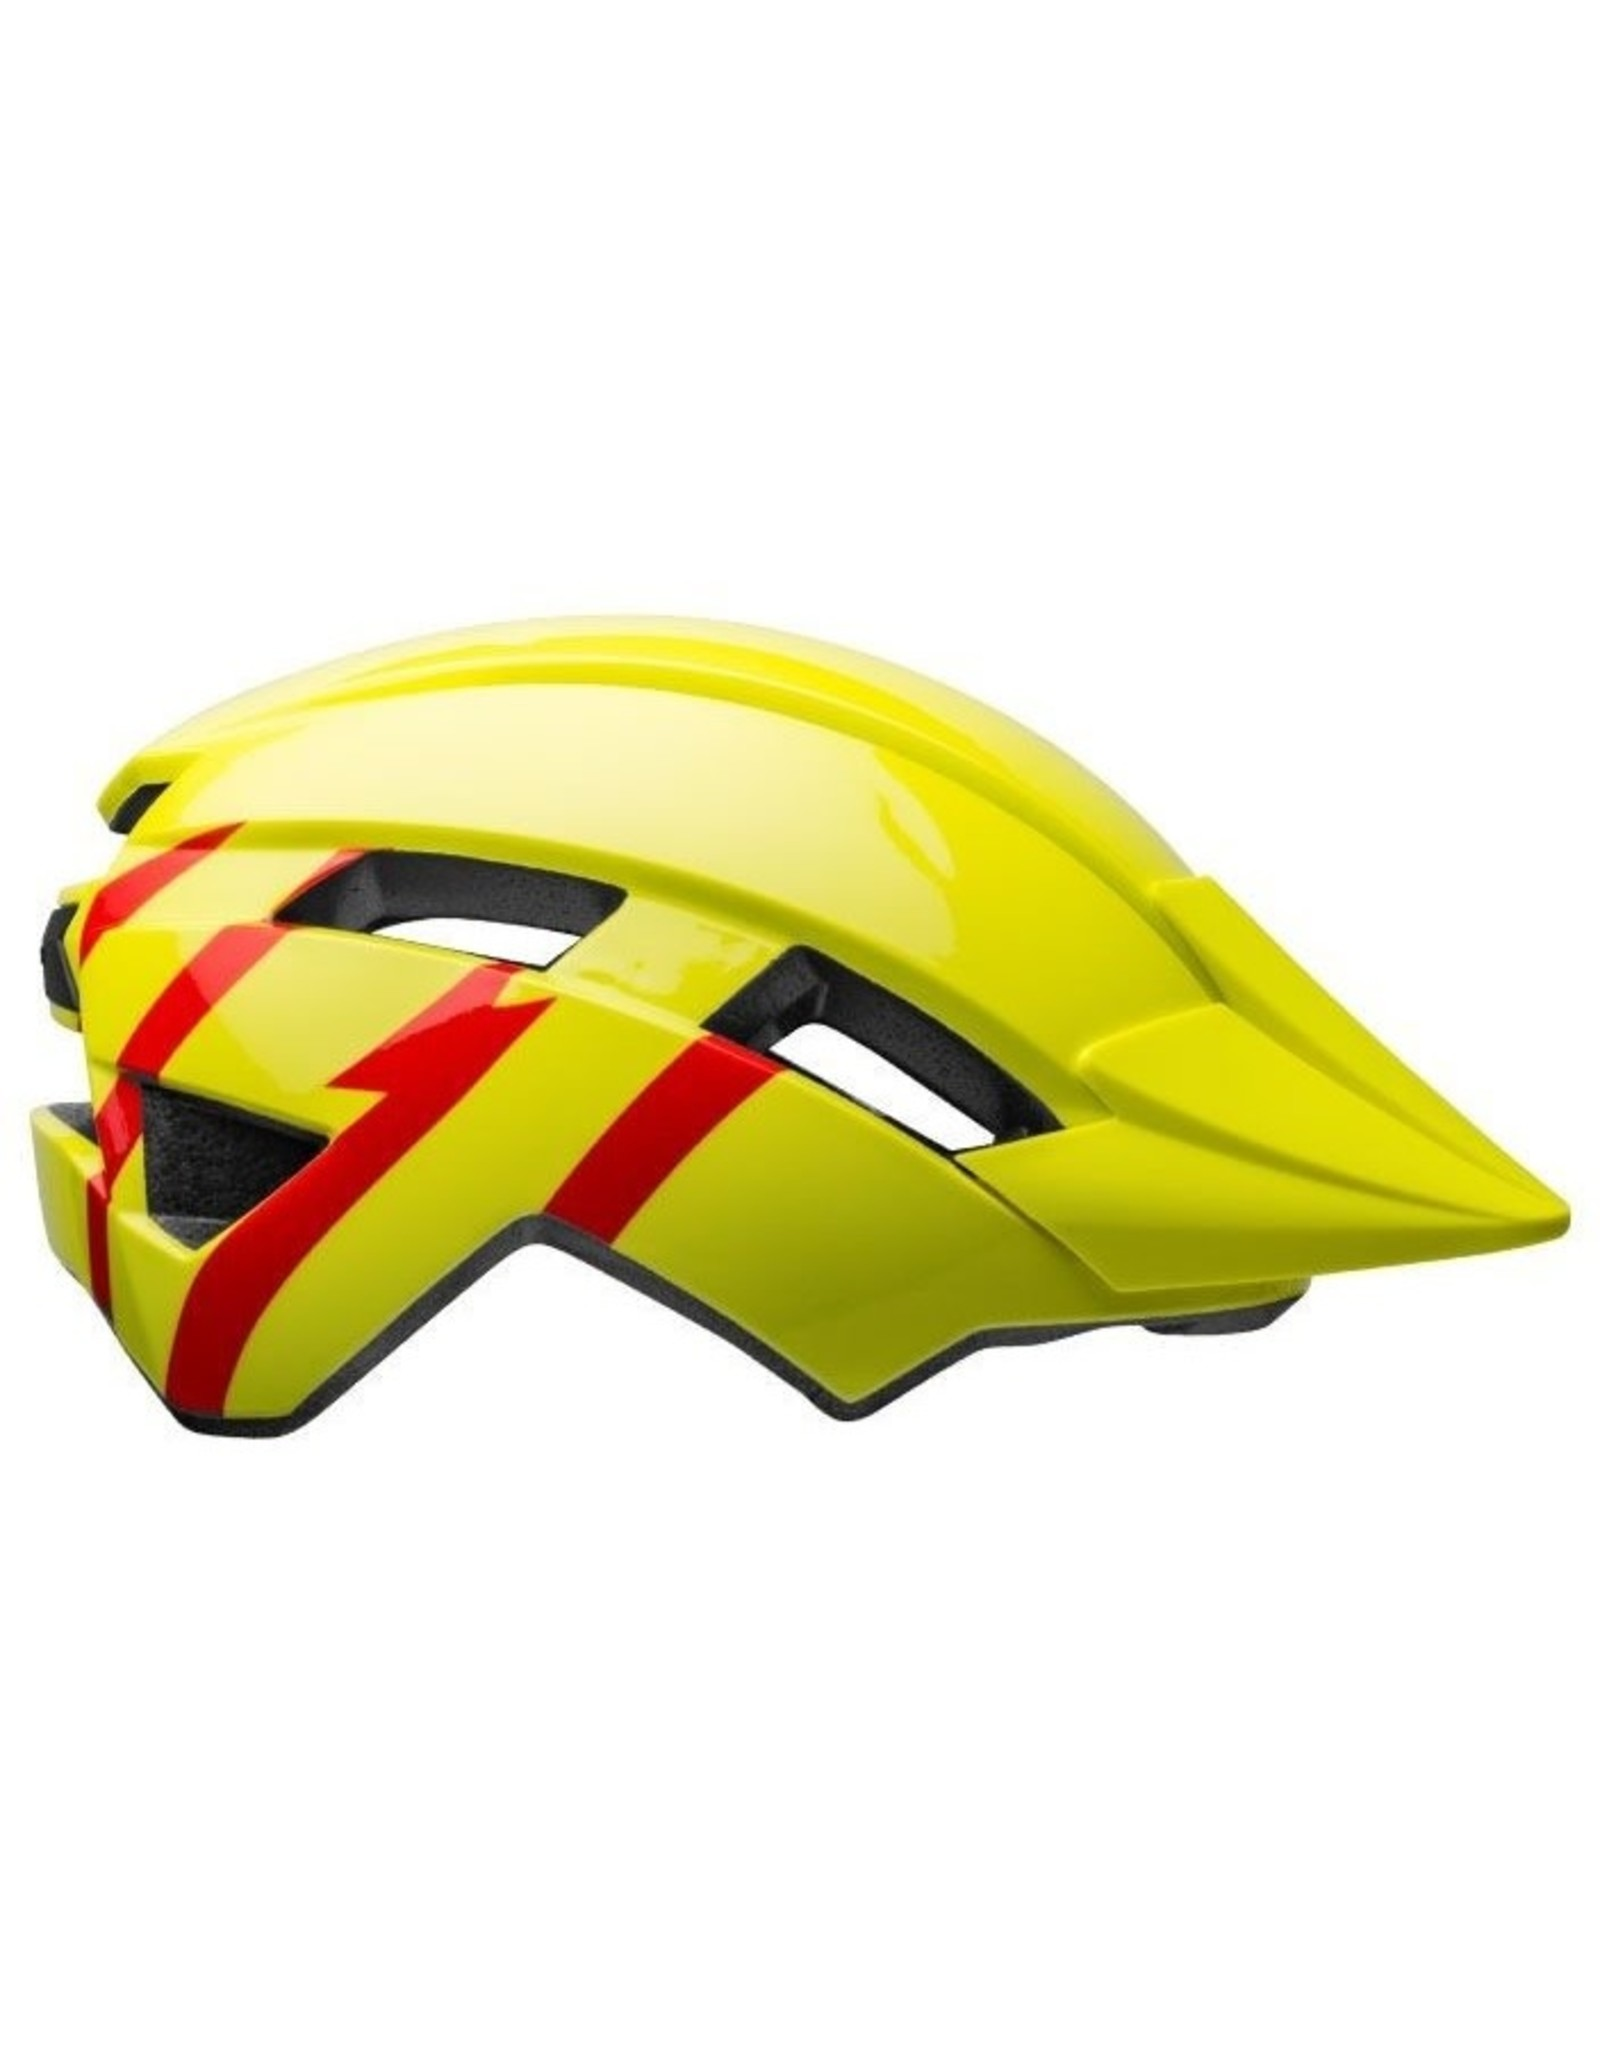 HELMET SIDETRACK II HIVZ/RED-YELLOW UC